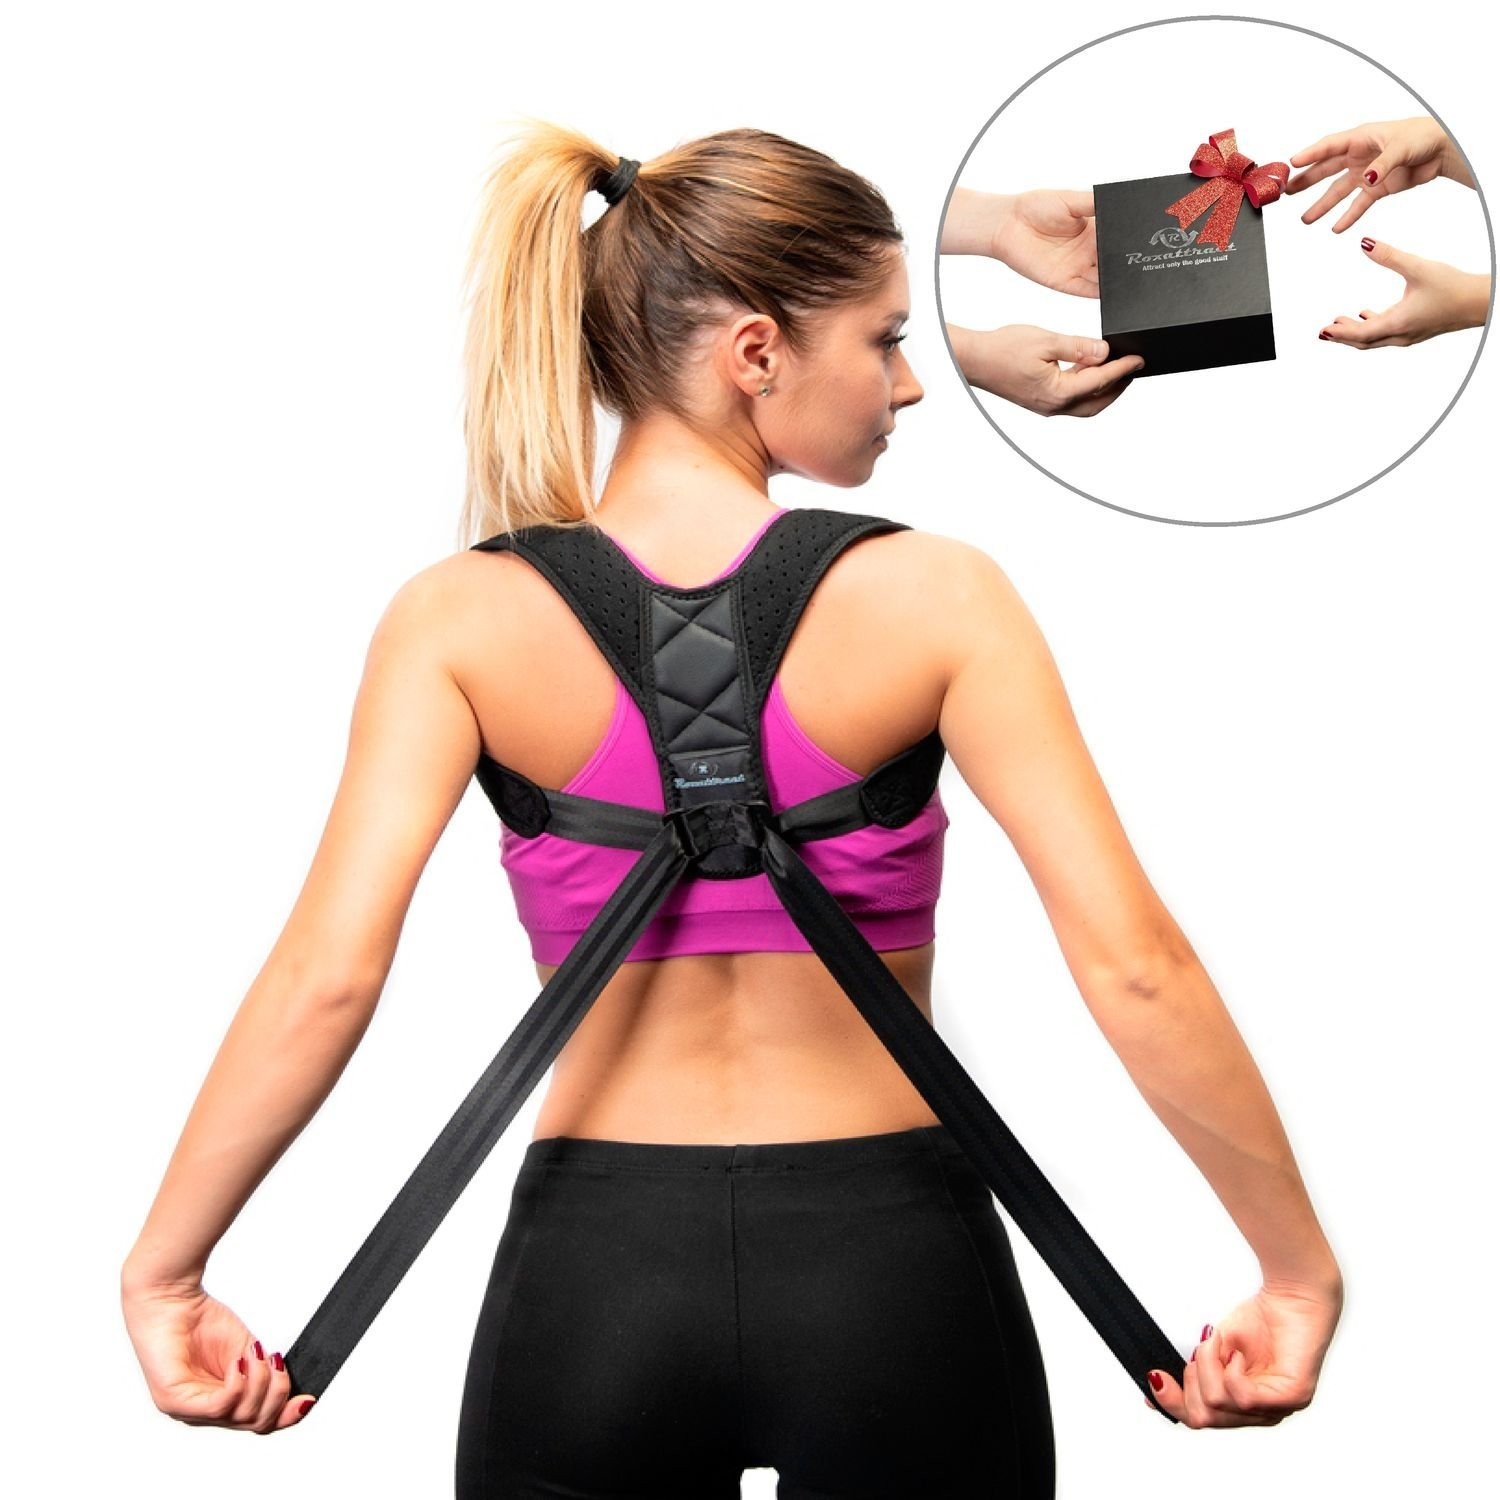 Back Posture Corrector for Women and Men-Breathable and Comfortable Clavicle Brace for Improving Posture-Adjustable and Discreet Clavicle Support Brace for Slouching & Hunching by Roxattract (Image #1)